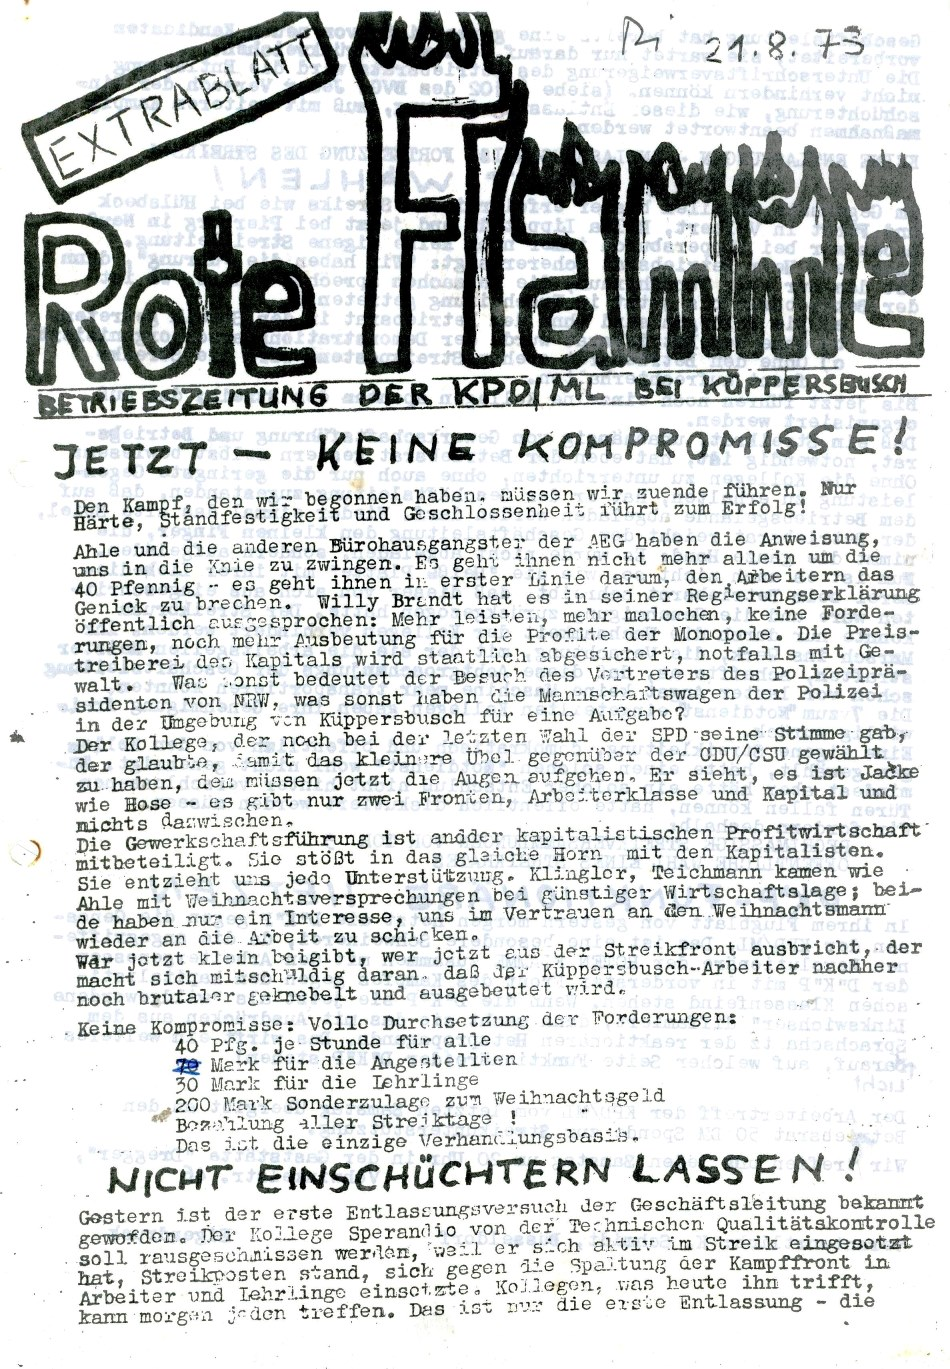 Rote_Flamme_1973_Extra_August_21_01